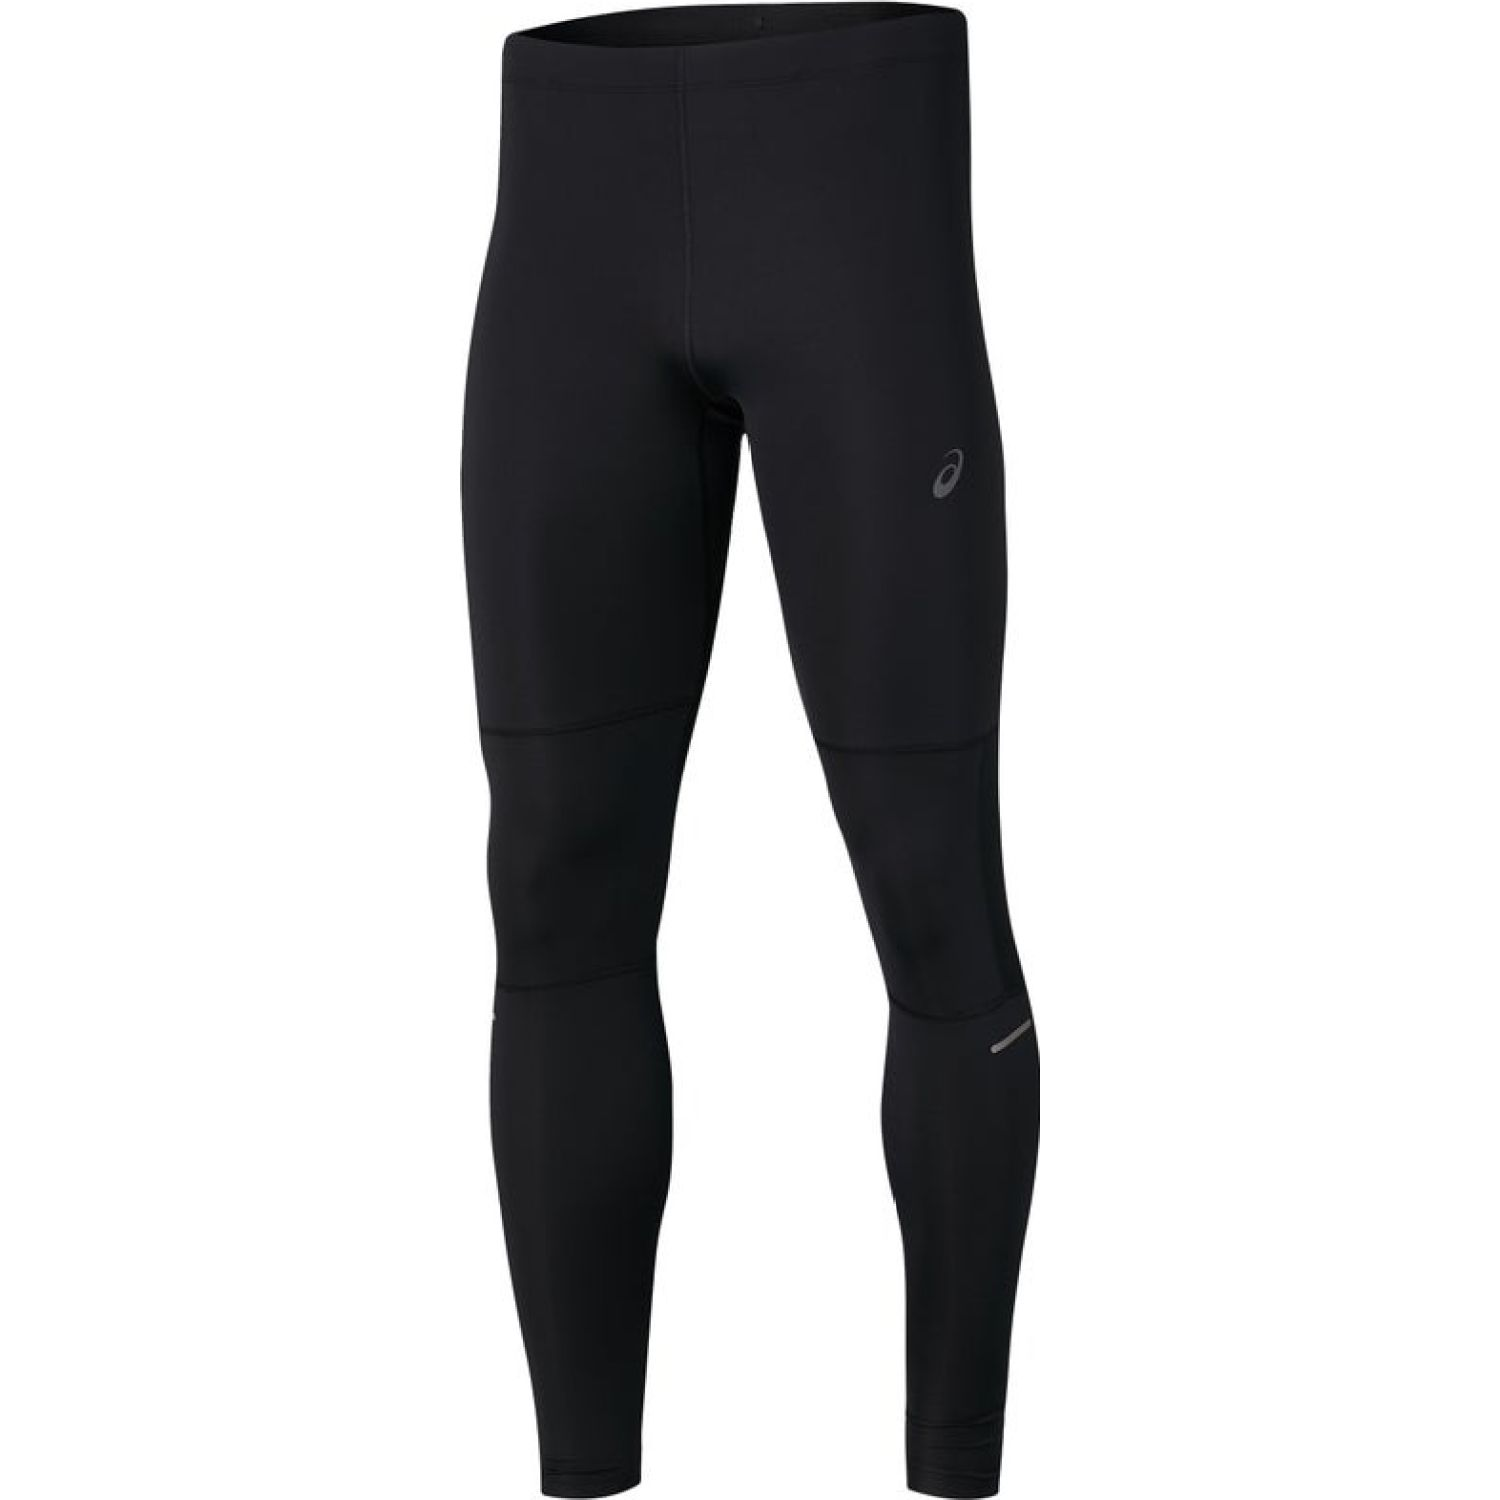 Asics M Race Tight Performance Black Negro Pantalones deportivos